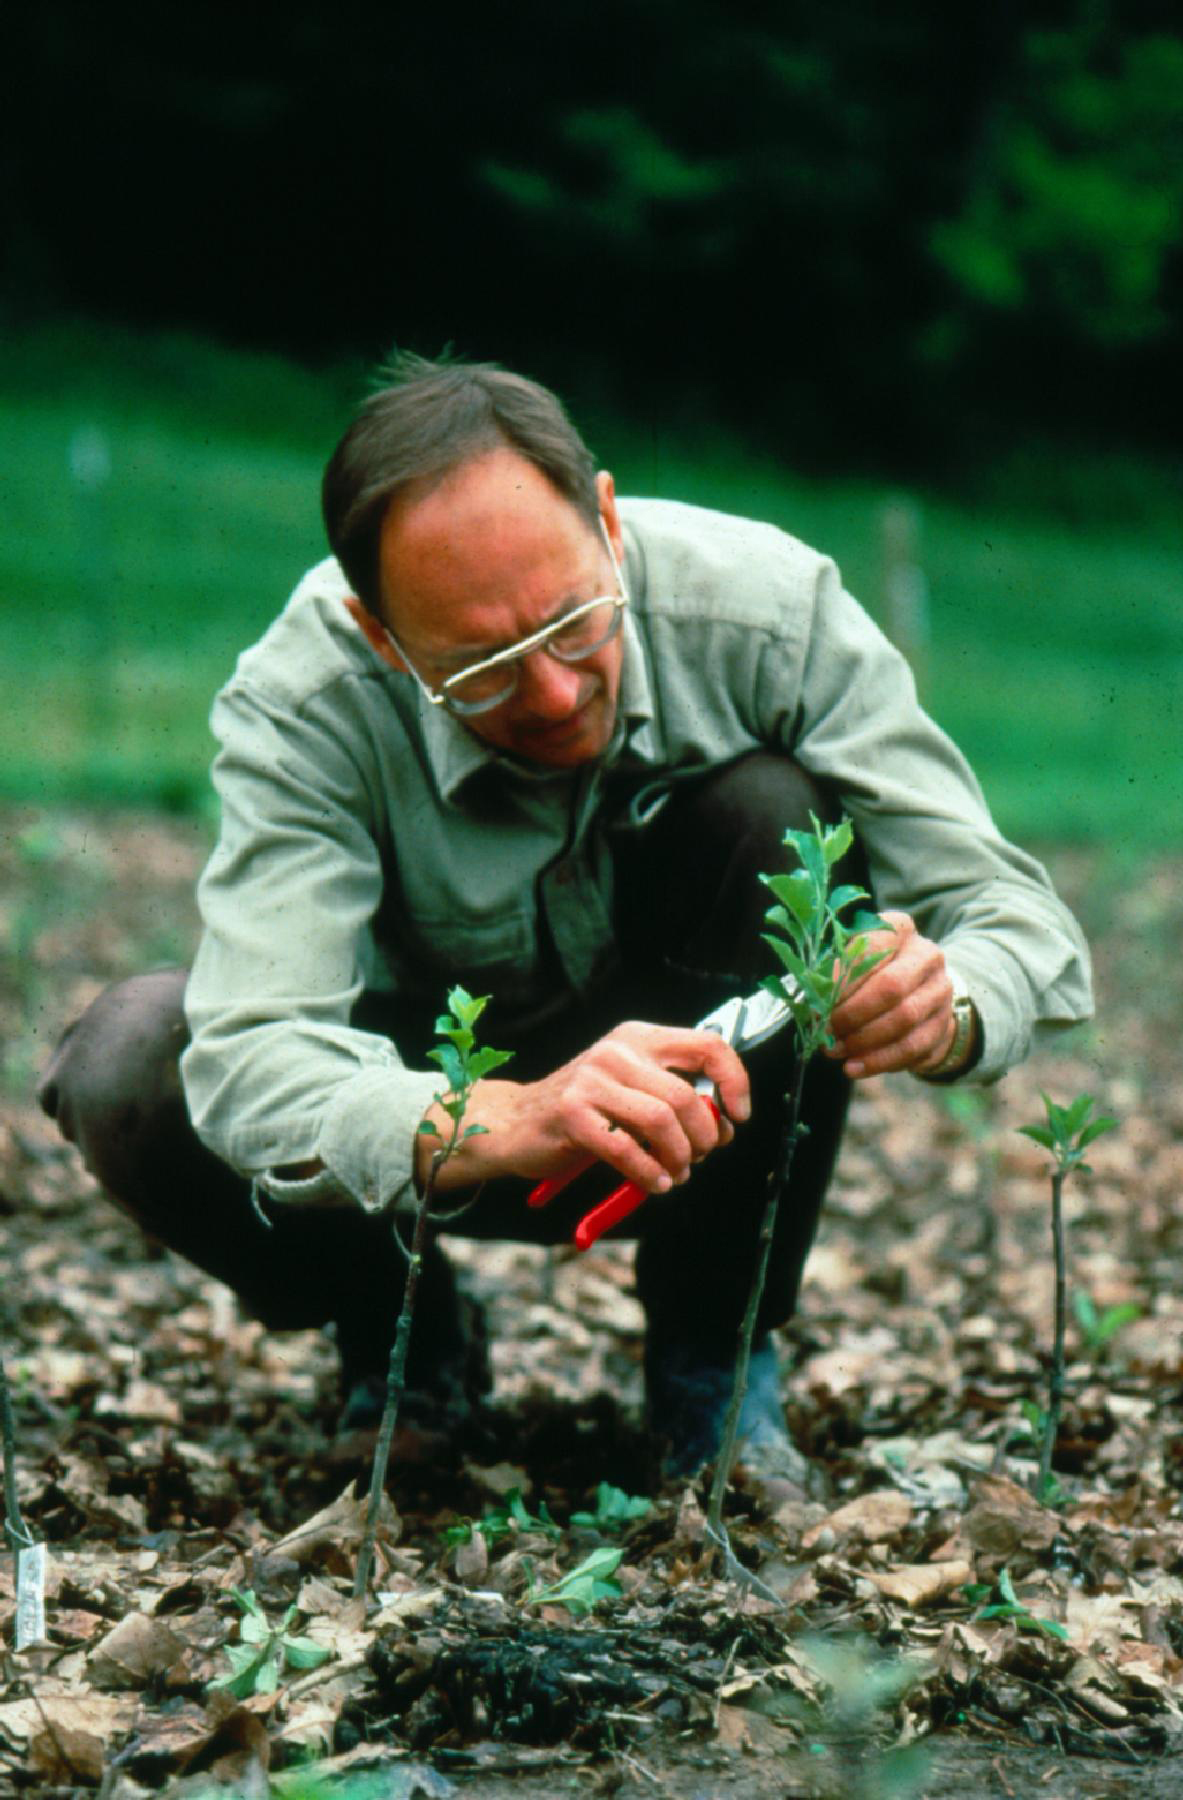 David Sliwa, first orchard manager at Seed Savers Exchange, prunes side shoots in the temporary nursery at Heritage Farm, about 1990.